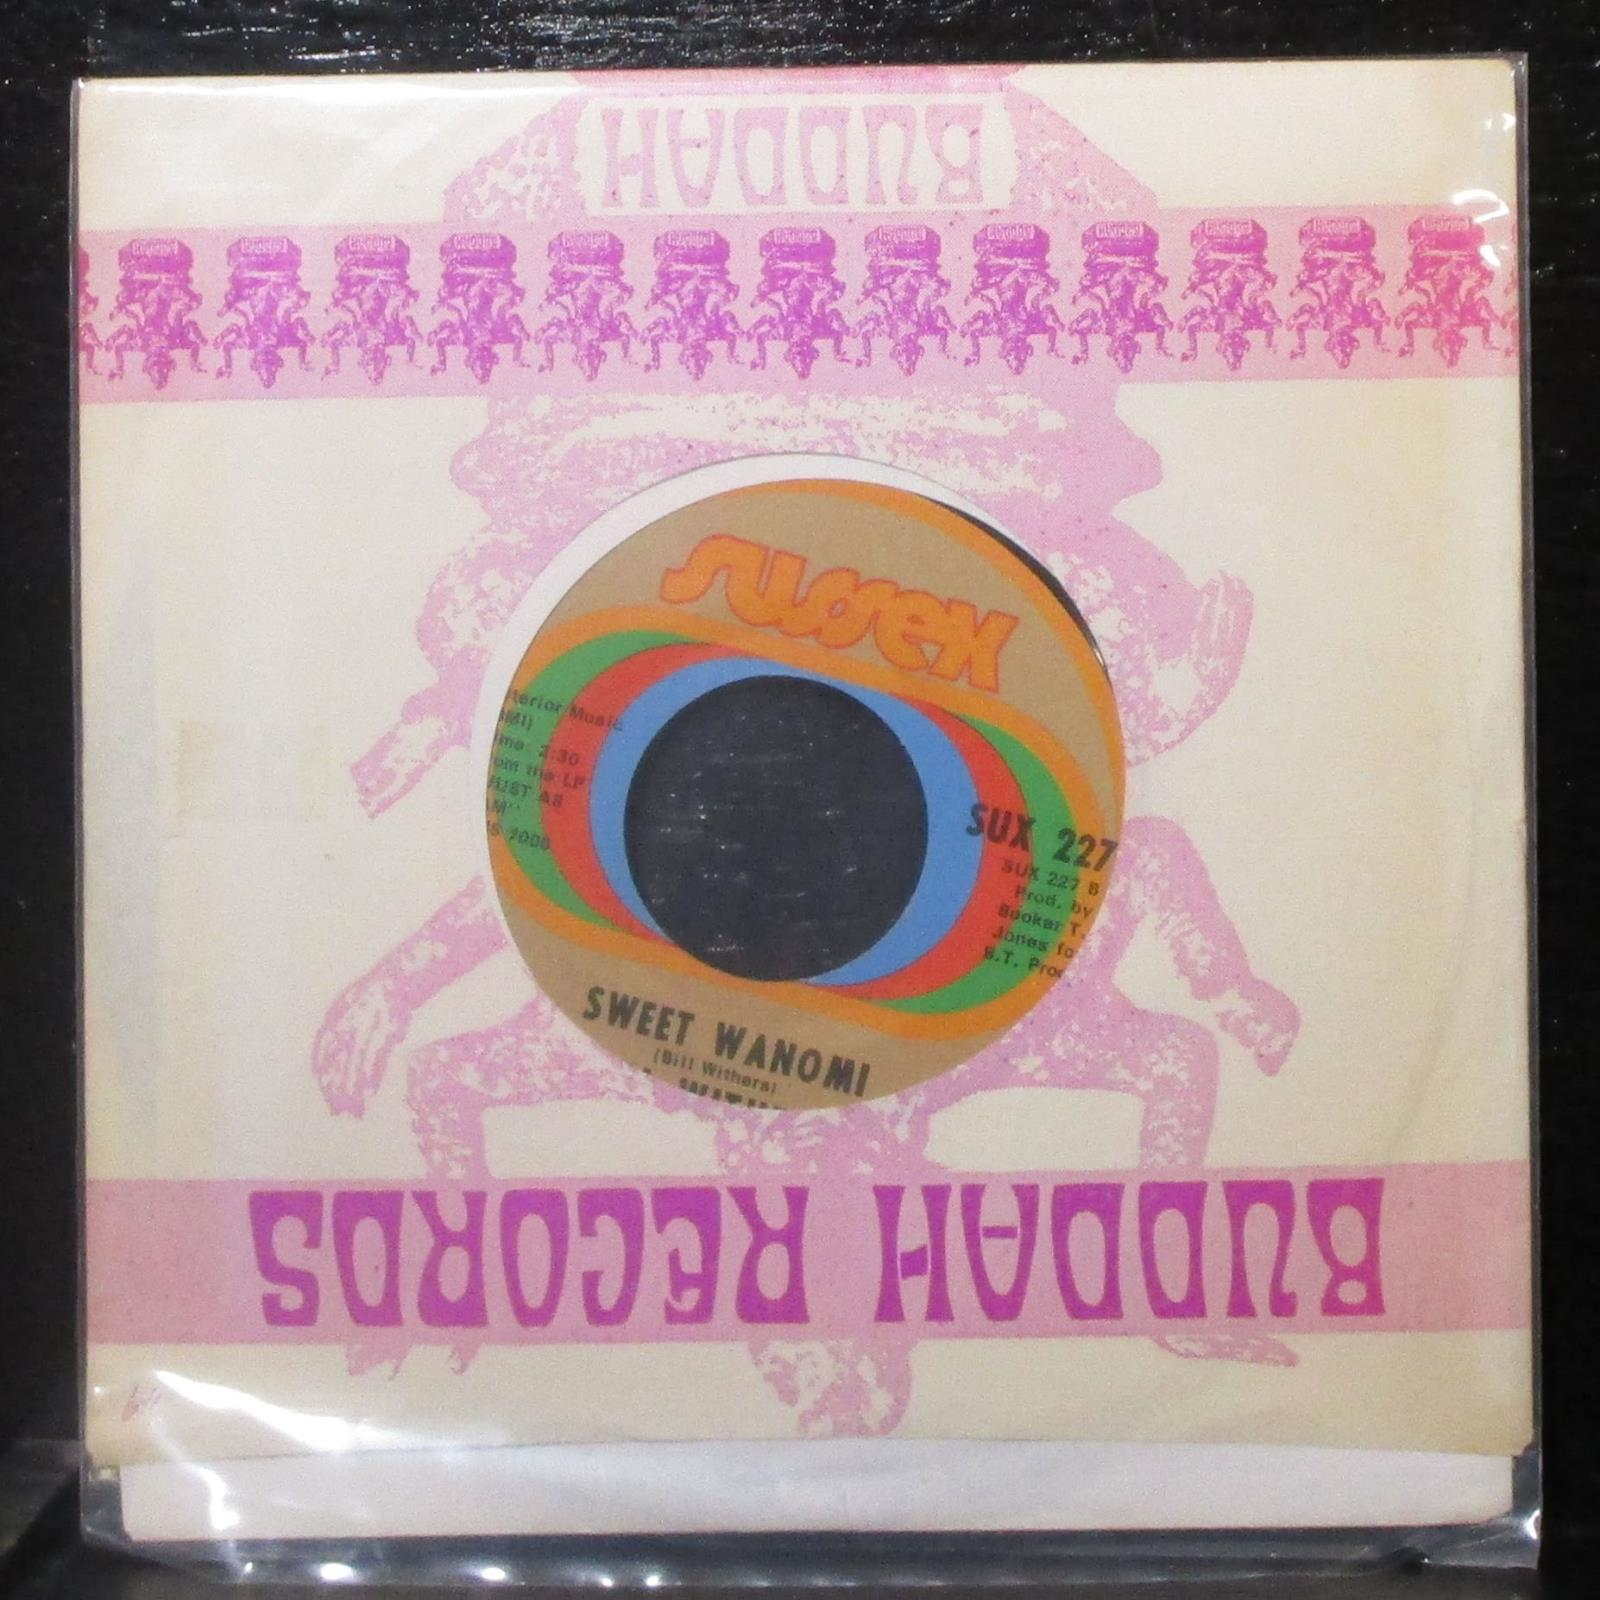 Bill Withers - Grandma's Hands / Sweet Wanomi 7